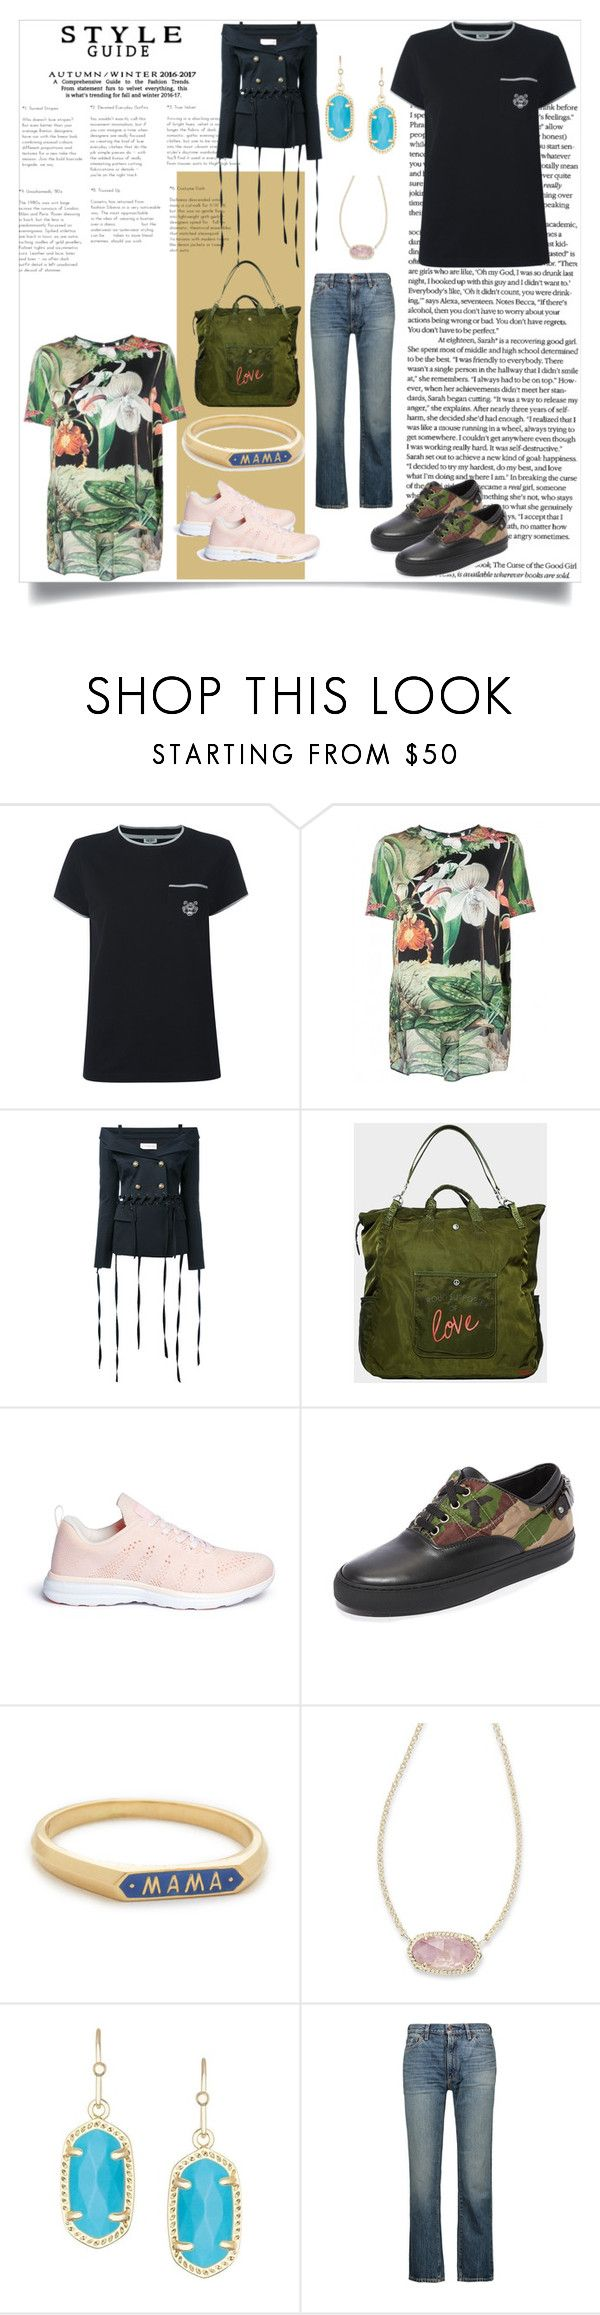 """""""Think Yourself"""" by denisee-denisee ❤ liked on Polyvore featuring Kenzo, ADAM, Faith Connexion, Peace Love World, Athletic Propulsion Labs, Moschino, Nora Kogan, Kendra Scott and Simon Miller"""